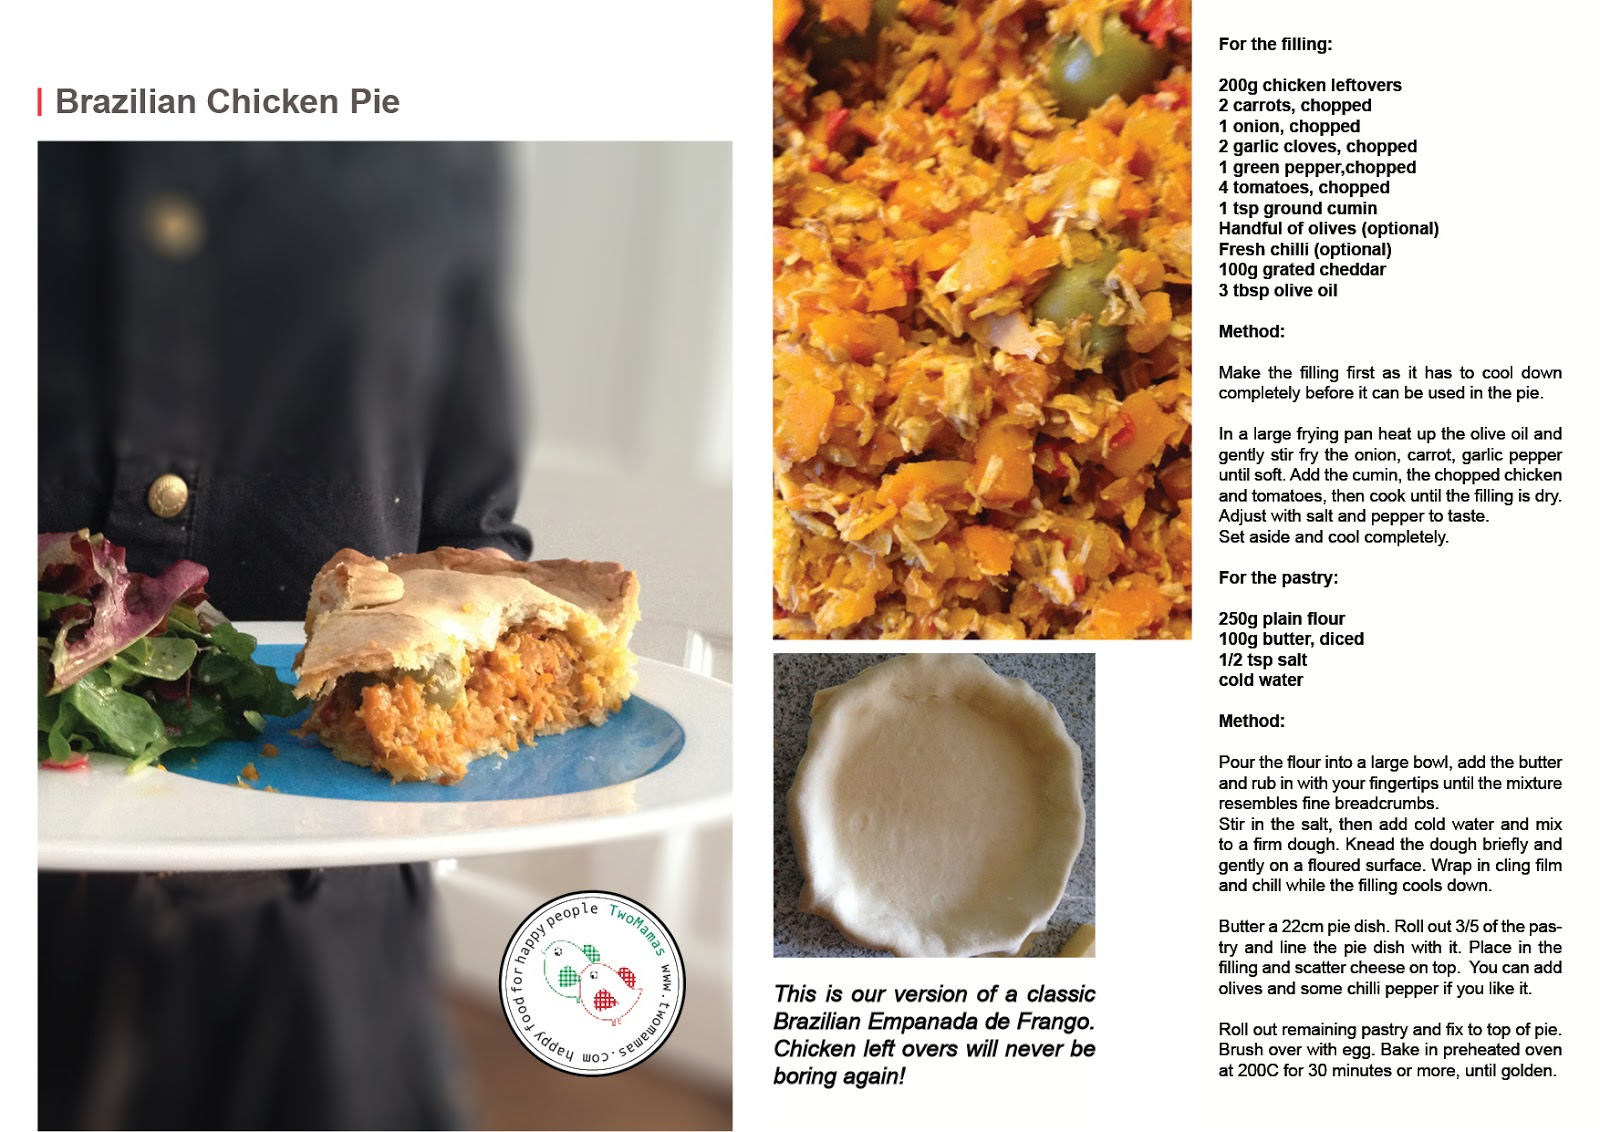 Brazilian chicken pie two mamas blog this is our interpretation of a classic brazilian empanada de frango loved by all chicken leftovers are exciting again download the recipe card forumfinder Images